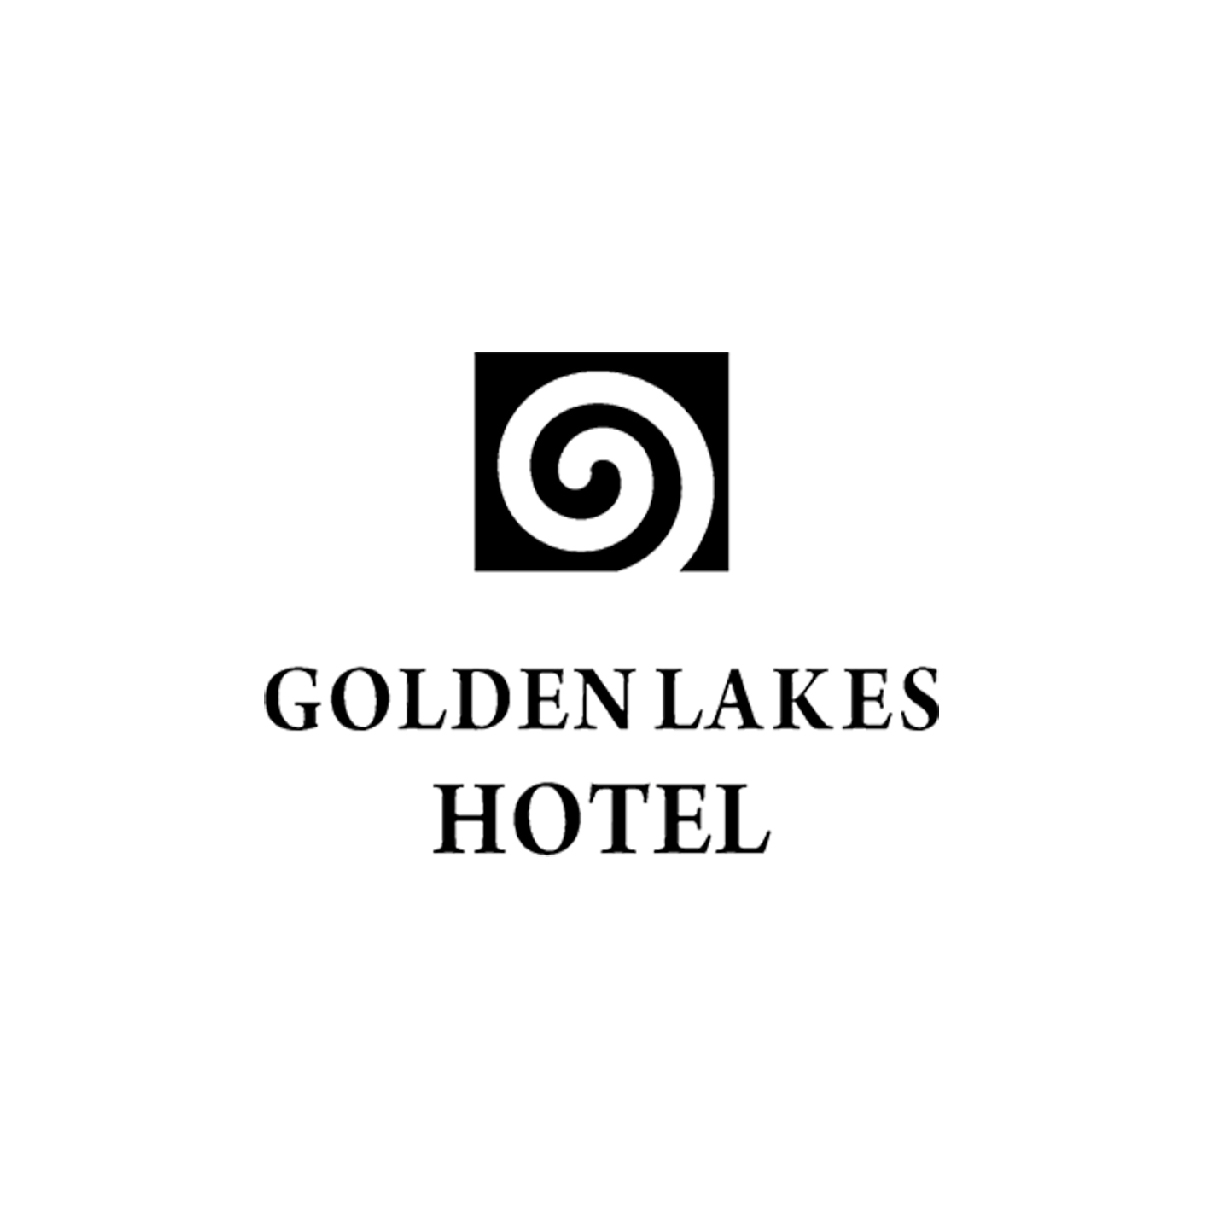 Golden Lakes